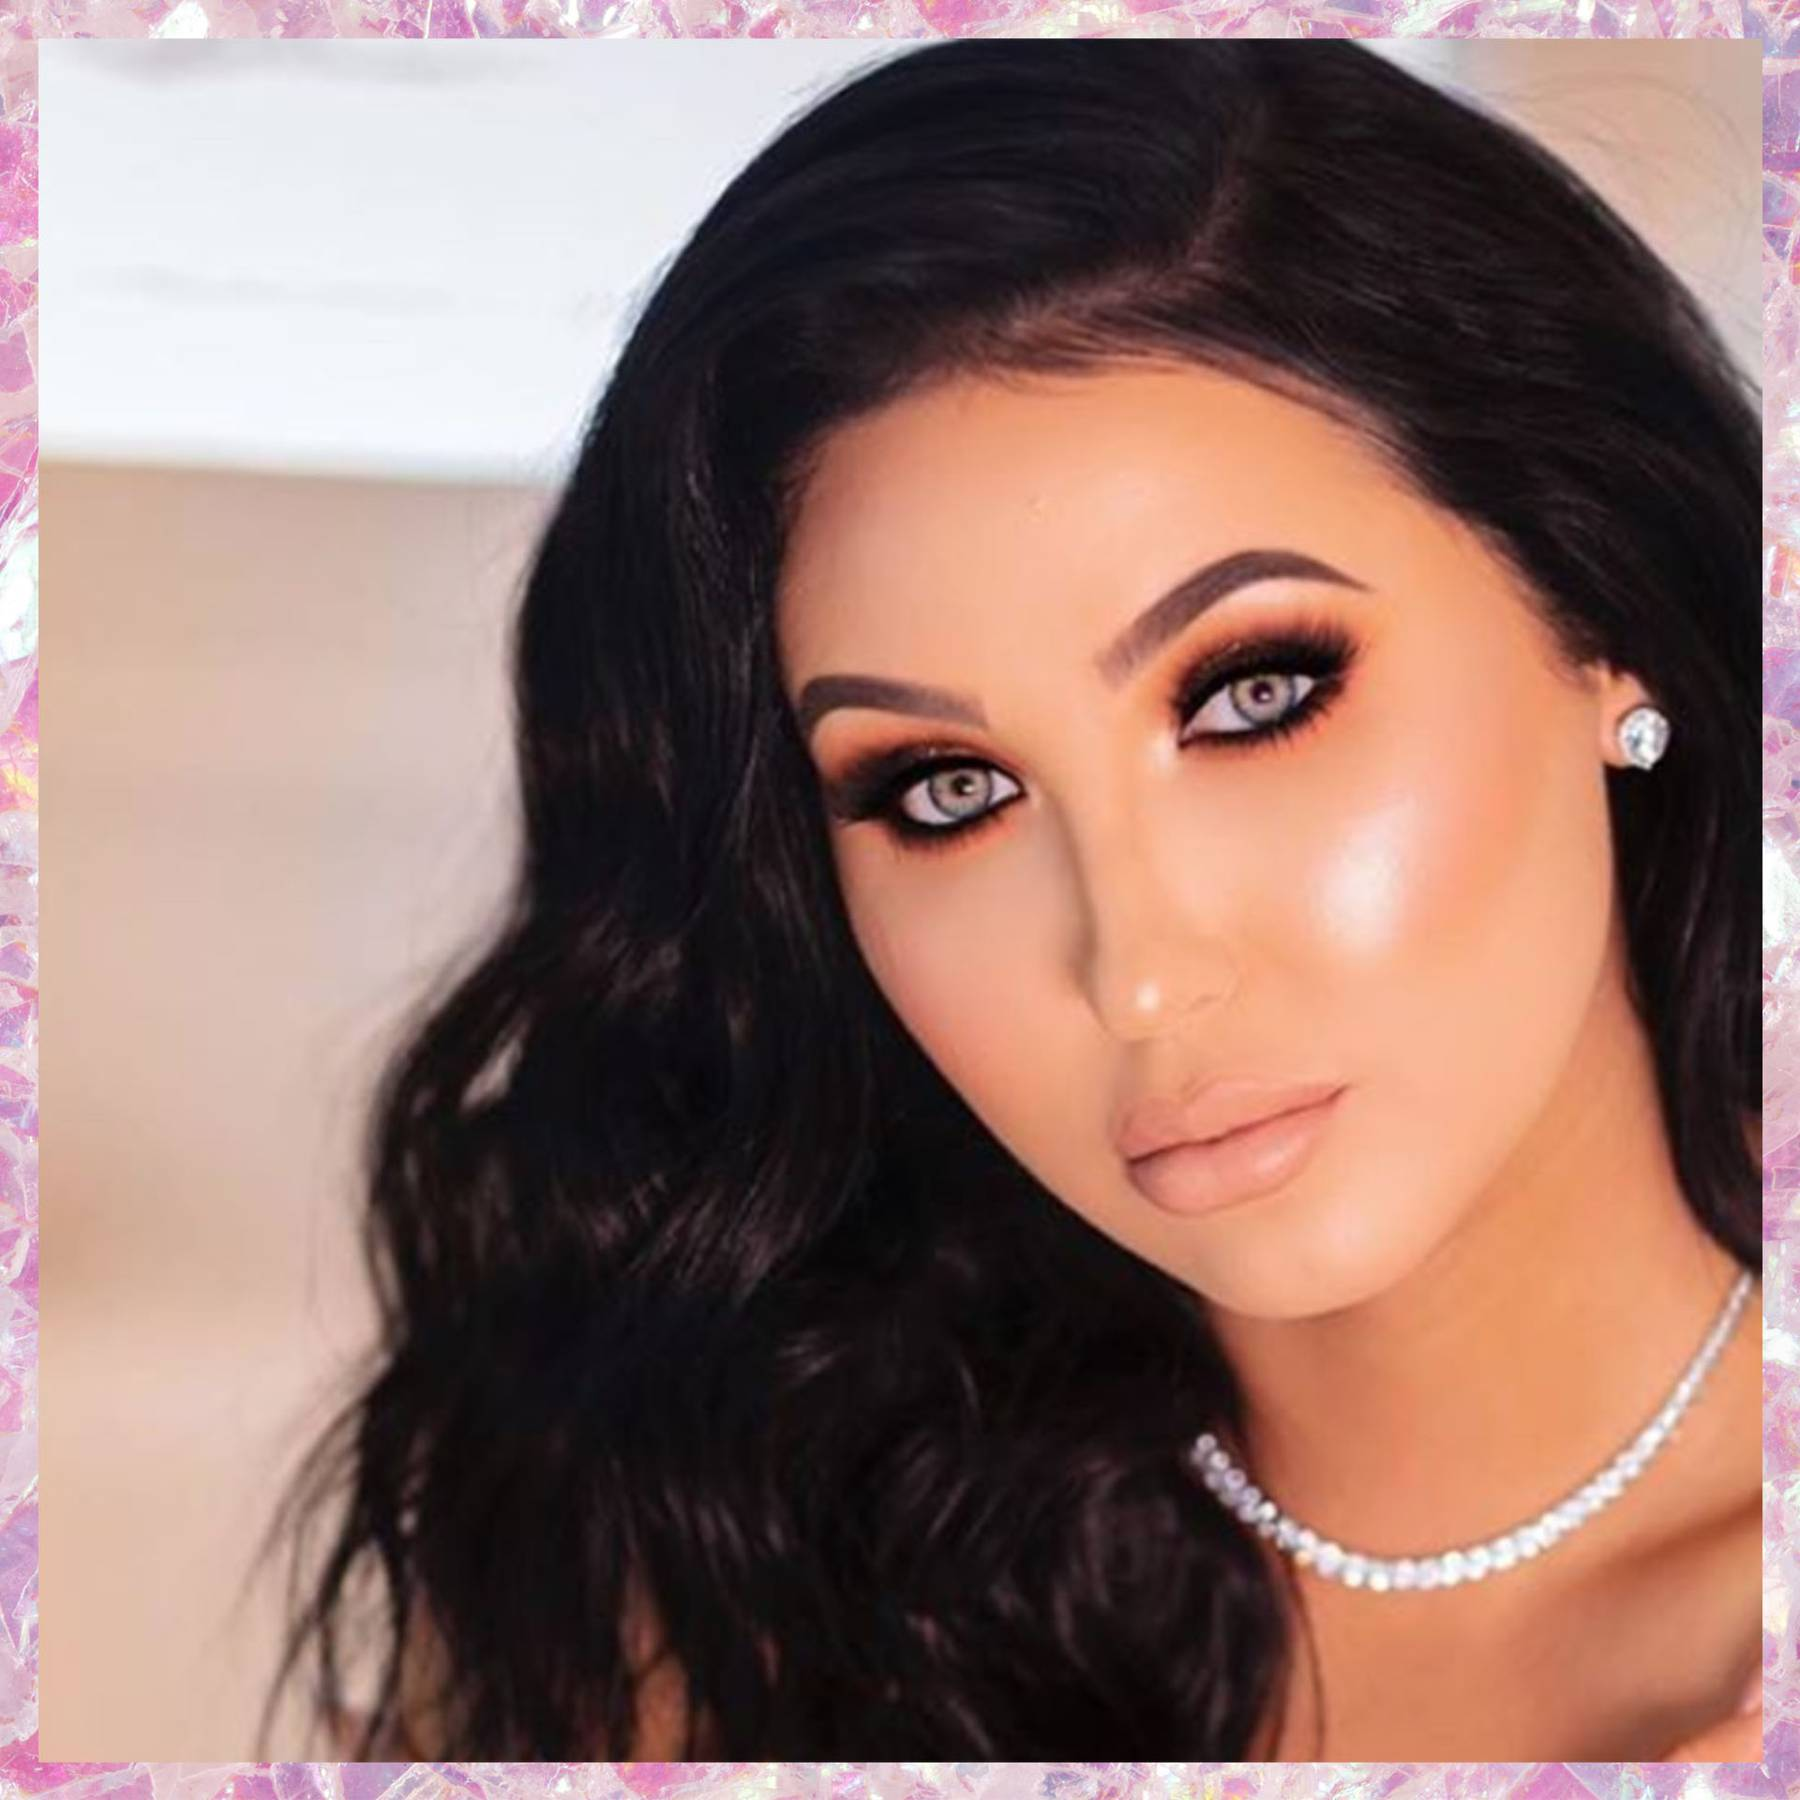 Beauty influencer Jaclyn Hill is relaunching her makeup collection after the backlash over her formulations